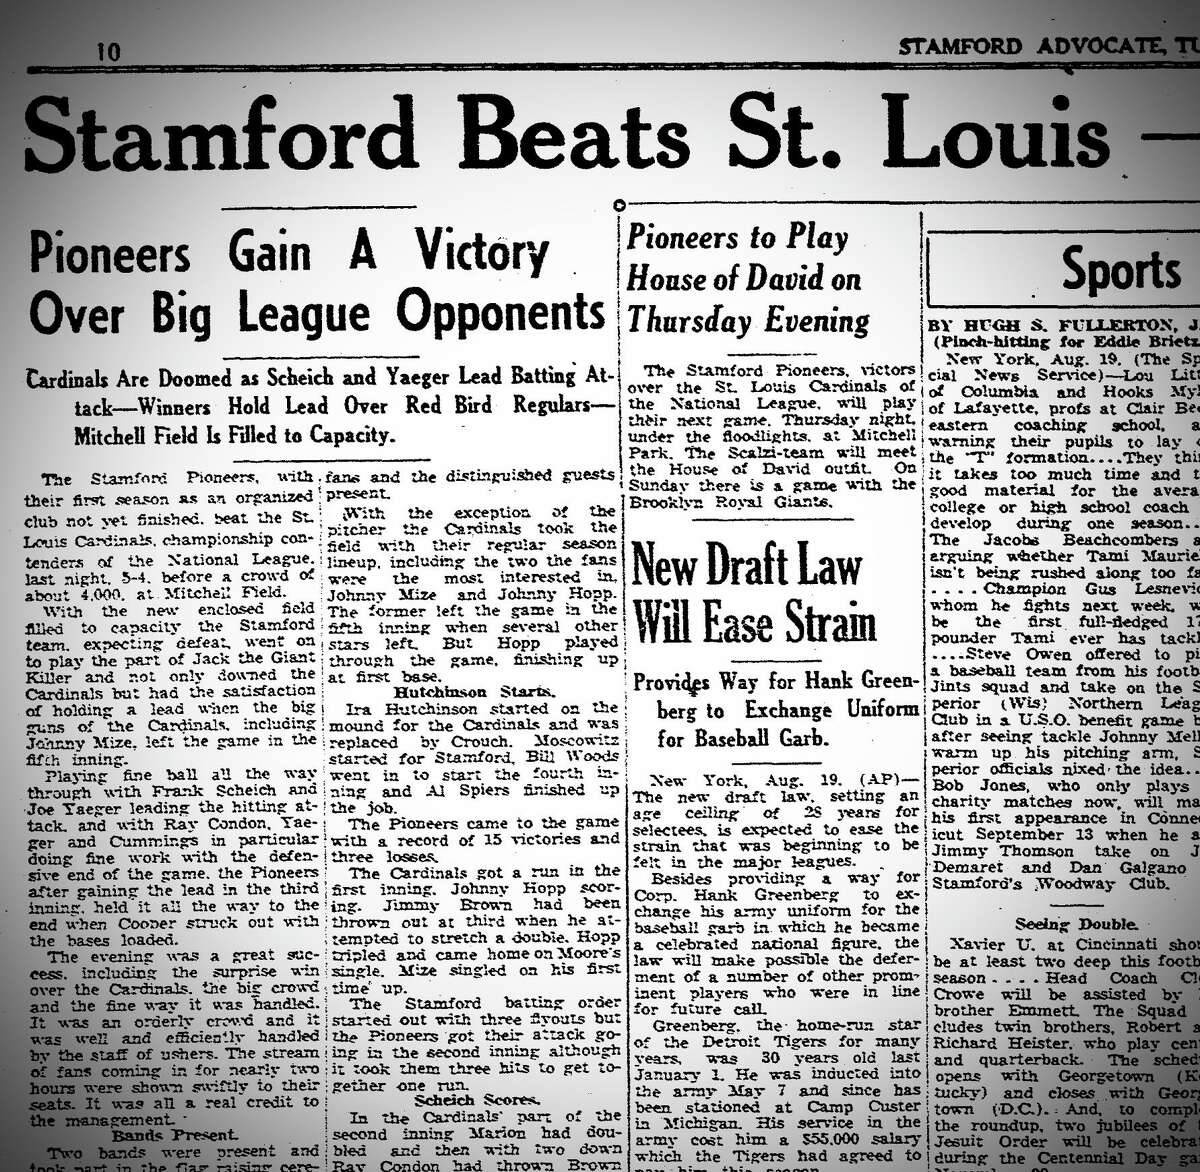 The Stamford Advocate coverage of the St. Louis Cardinals' 1941 exhibition game against a local baseball team.